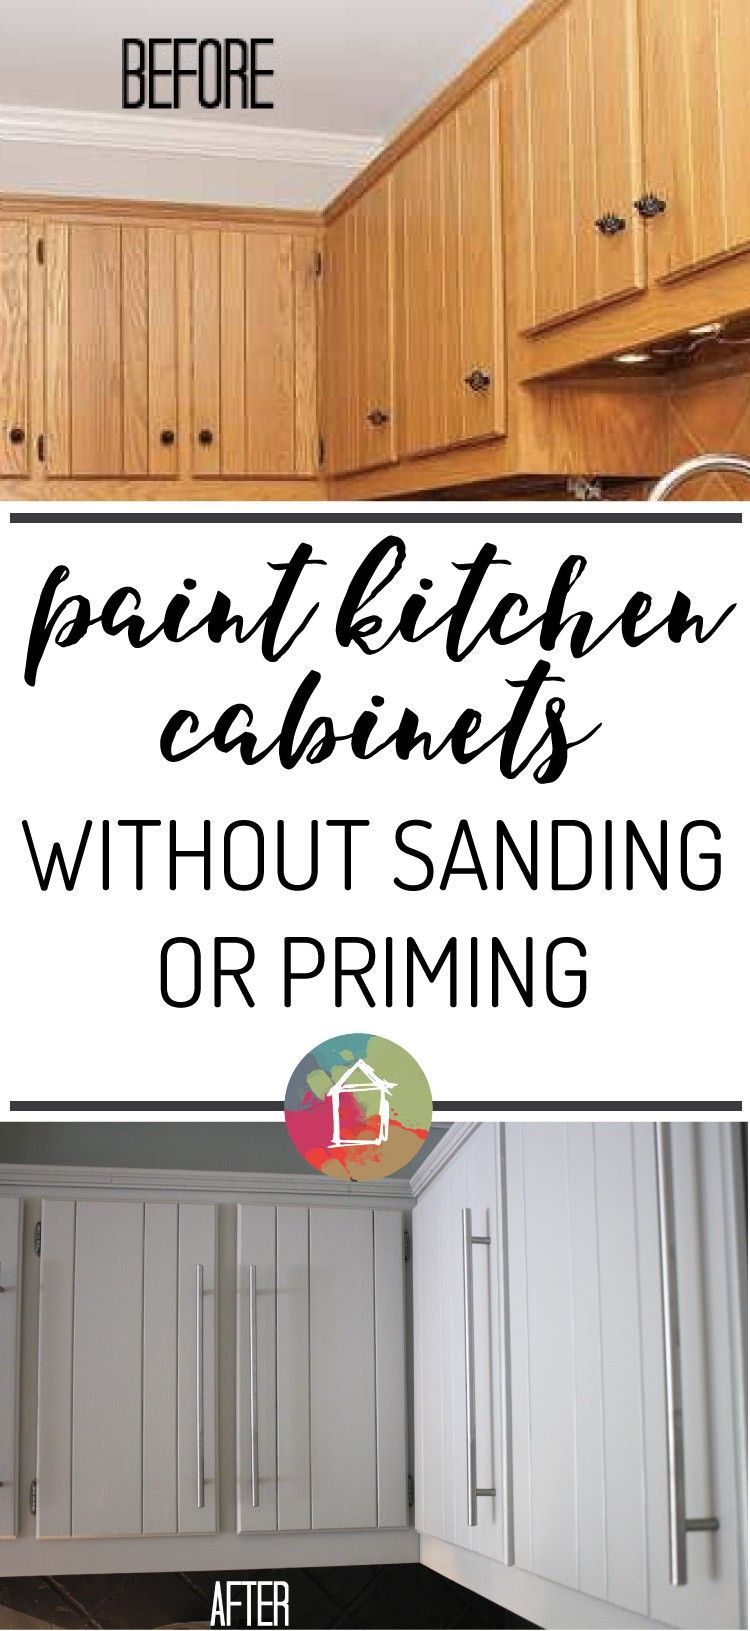 How To Paint Kitchen Cabinets Without Sanding Or Priming Step By Step Diy Kitchen Cabinets Diy Kitchen Kitchen Makeover